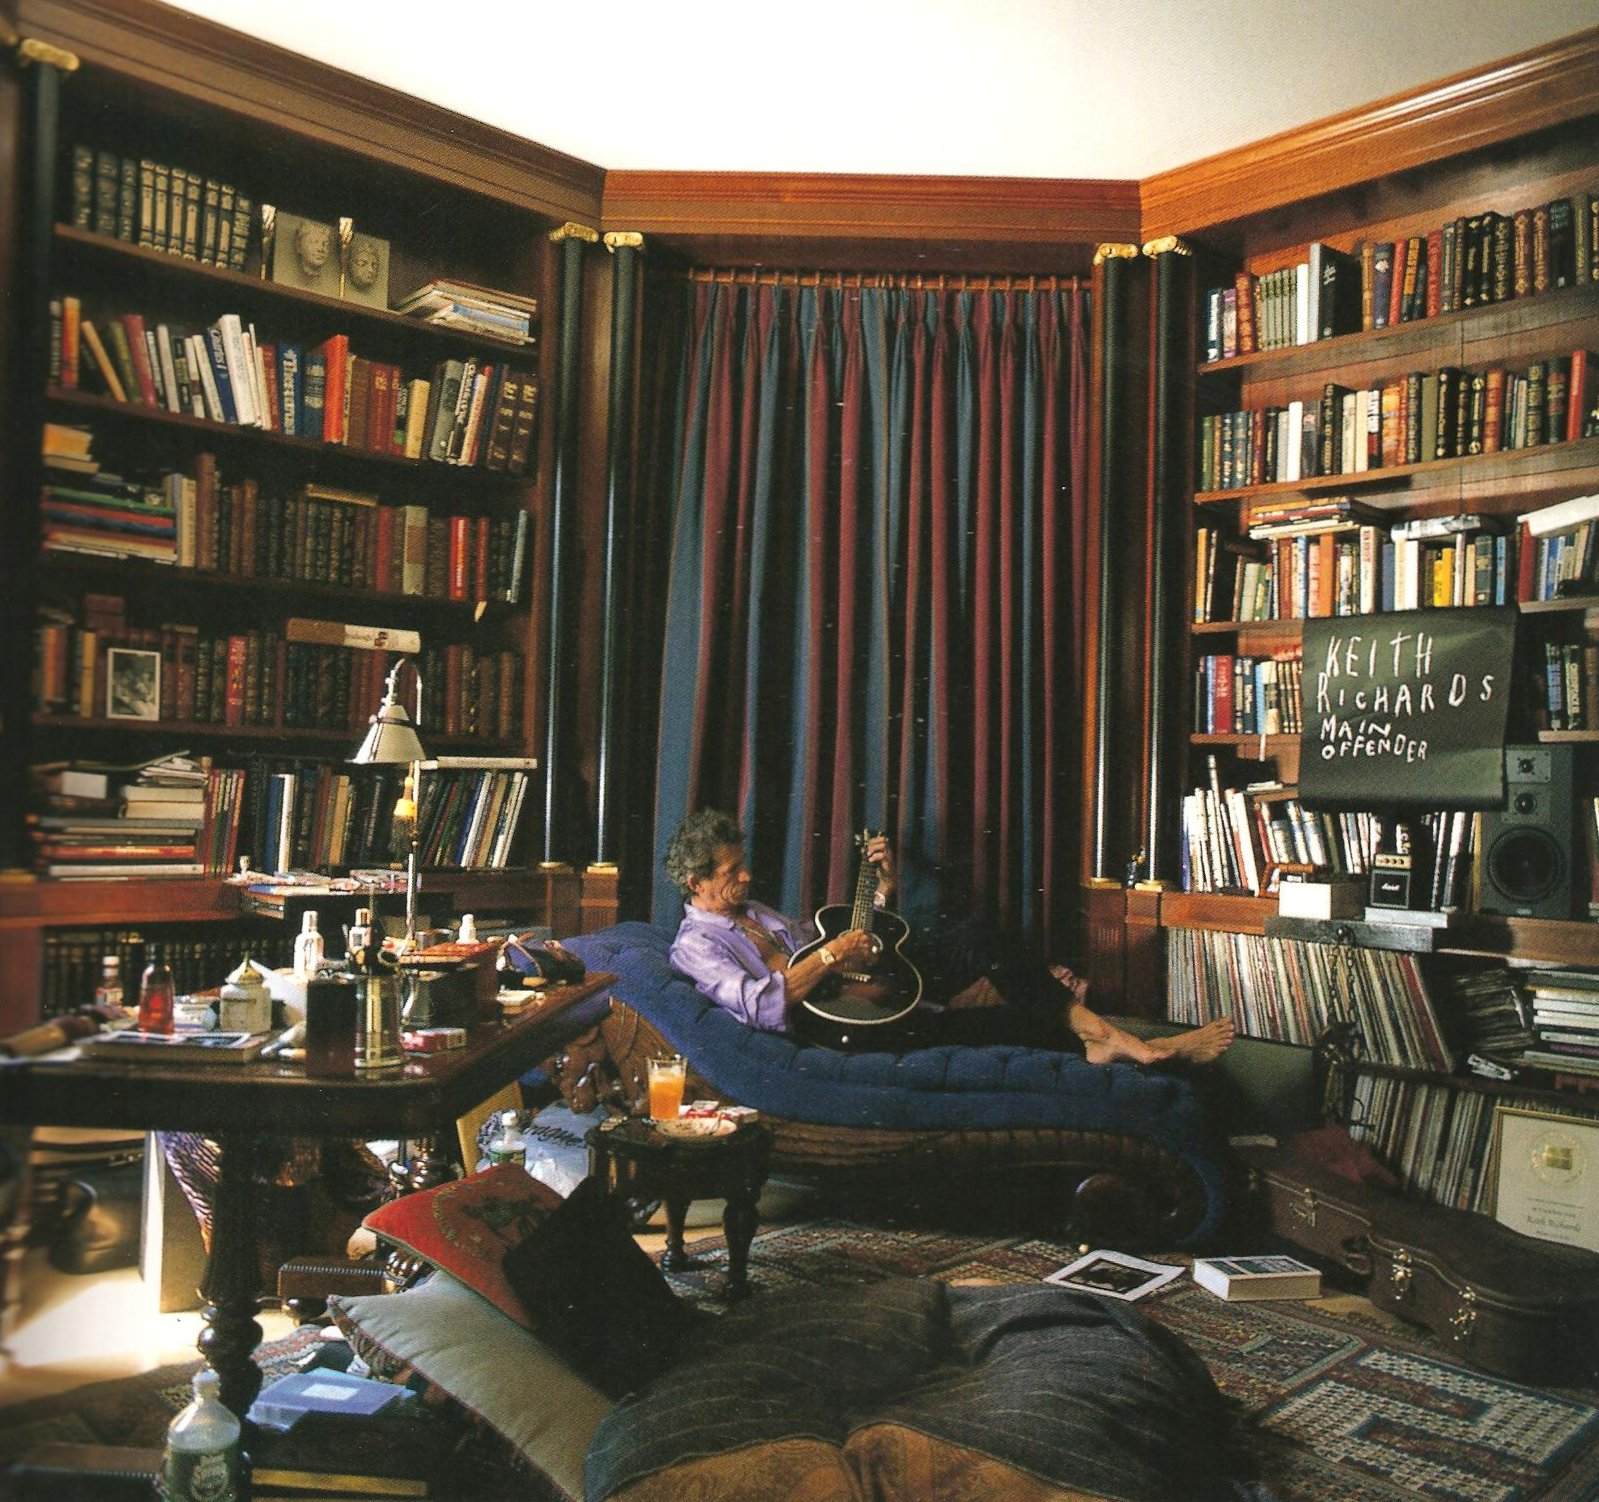 Study Room At Home: Private Study Rooms Of Famous People Pt.2 [20 Pics]